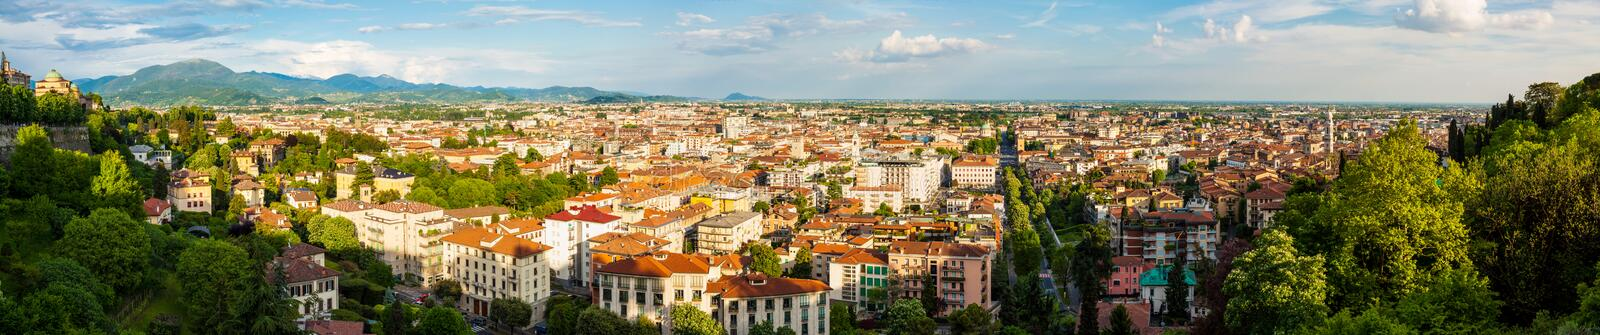 Bergamo City Panorama. Wide panorama taken from Citta Alta (Old City) with view of Bergamo city, Italy royalty free stock image